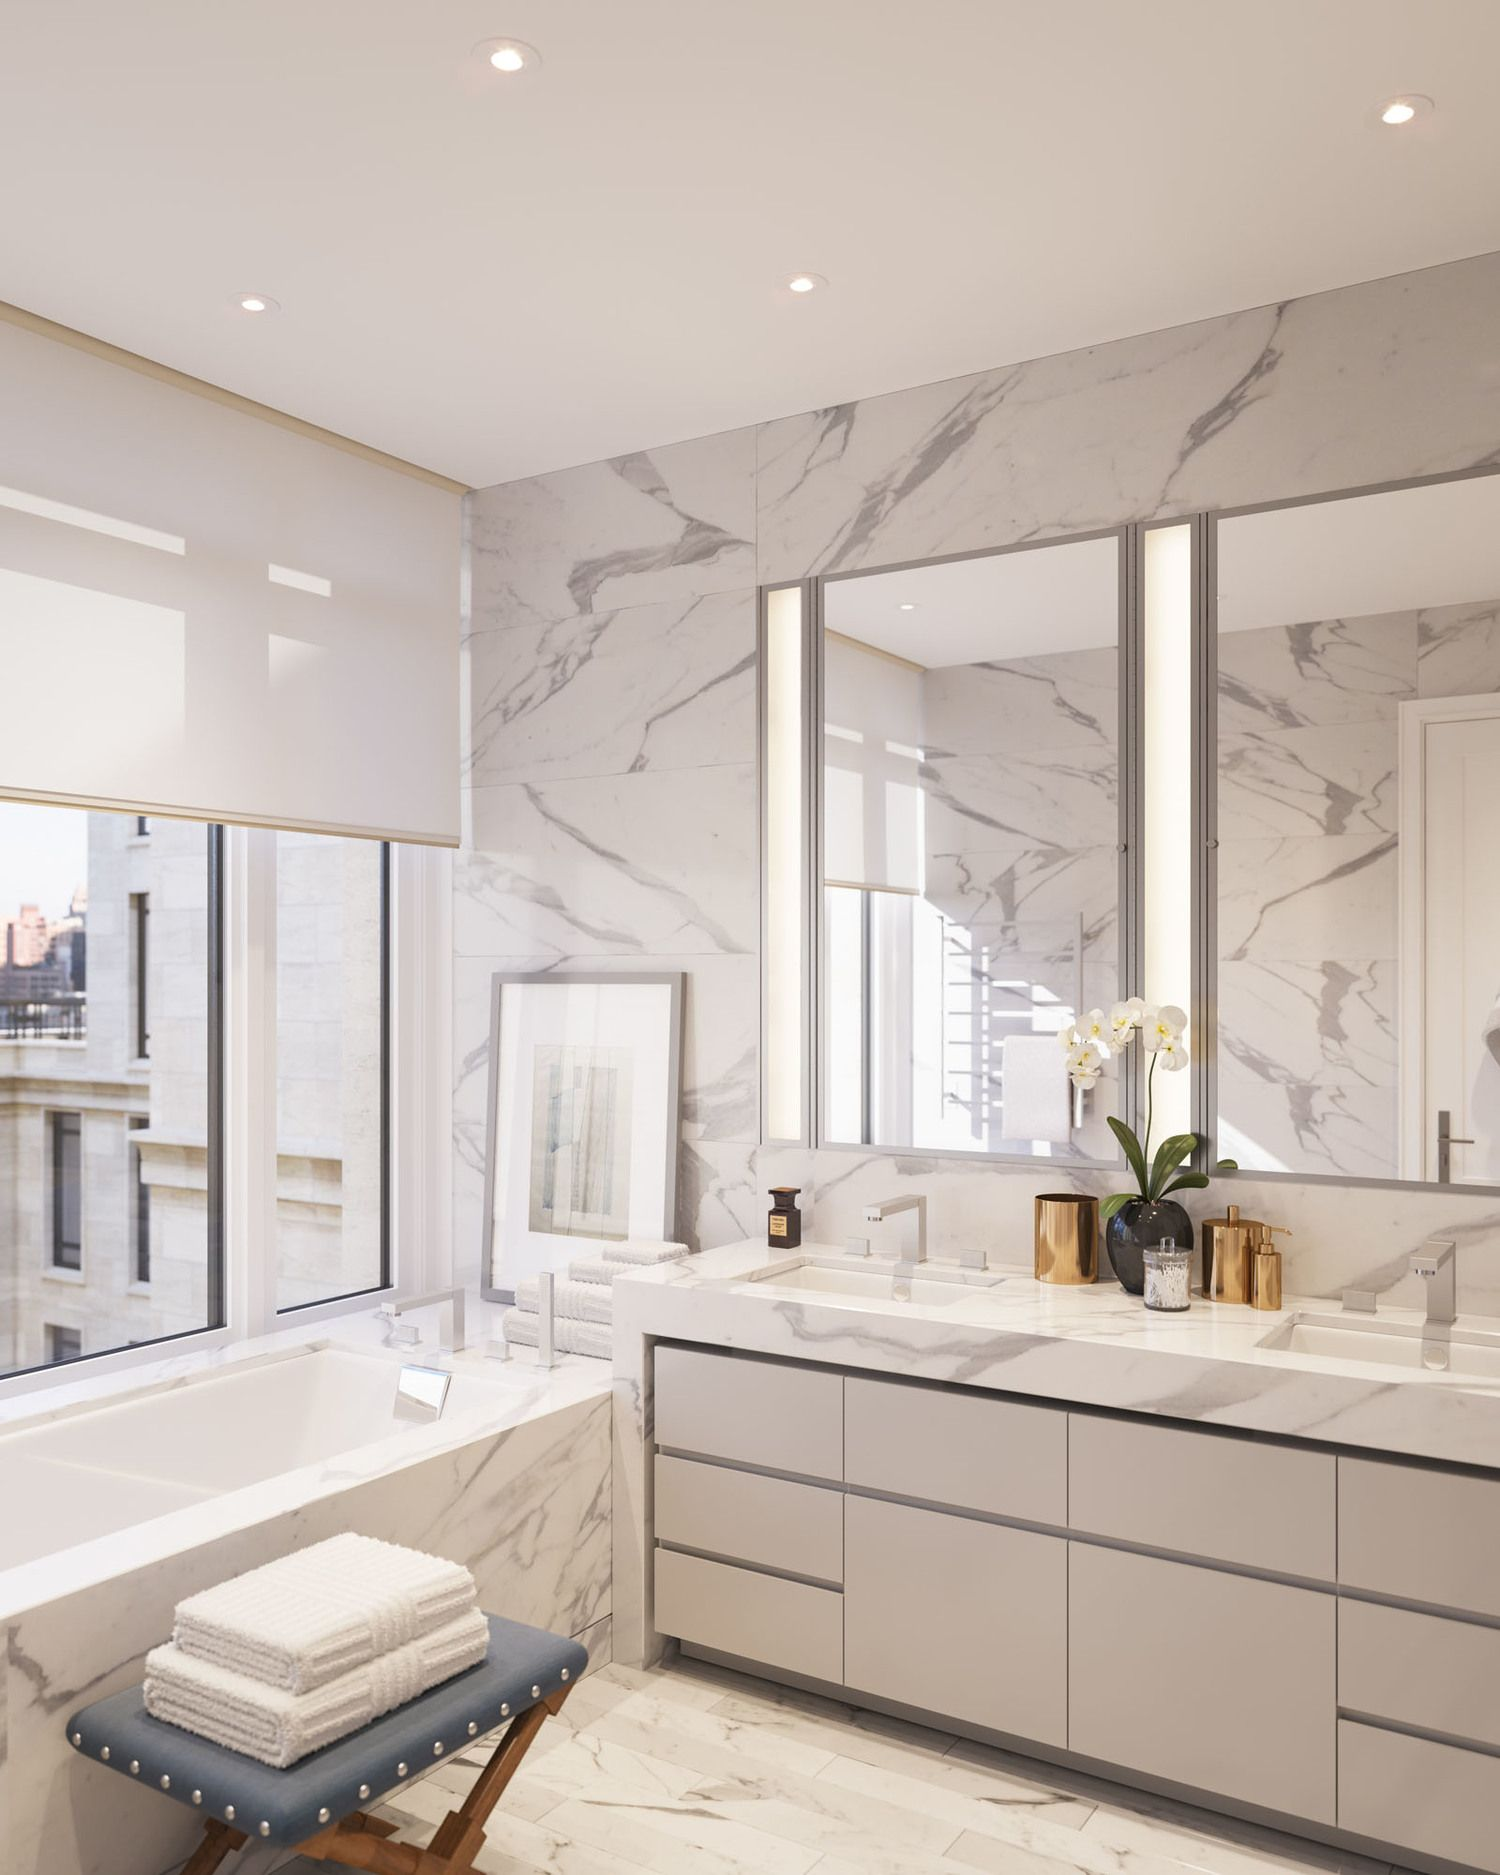 Carrera Marble Bathrooms Pictures: Modern Marble Bathroom